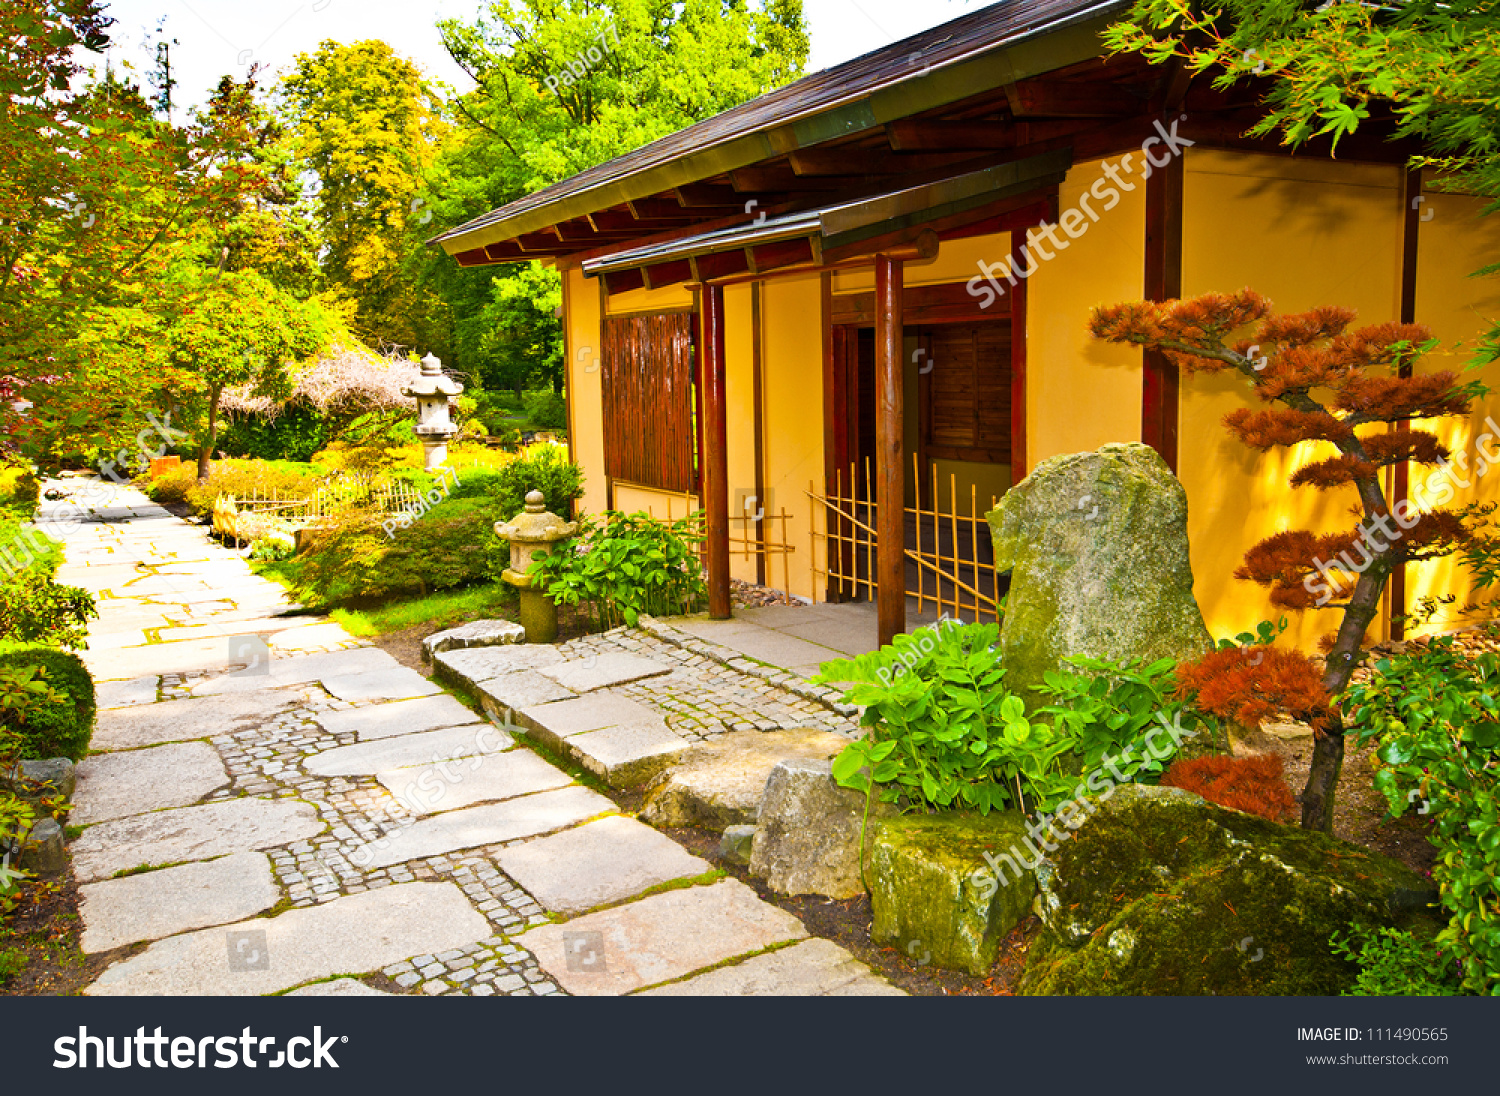 Japanese house in garden stock photo 111490565 shutterstock for Japanese house garden